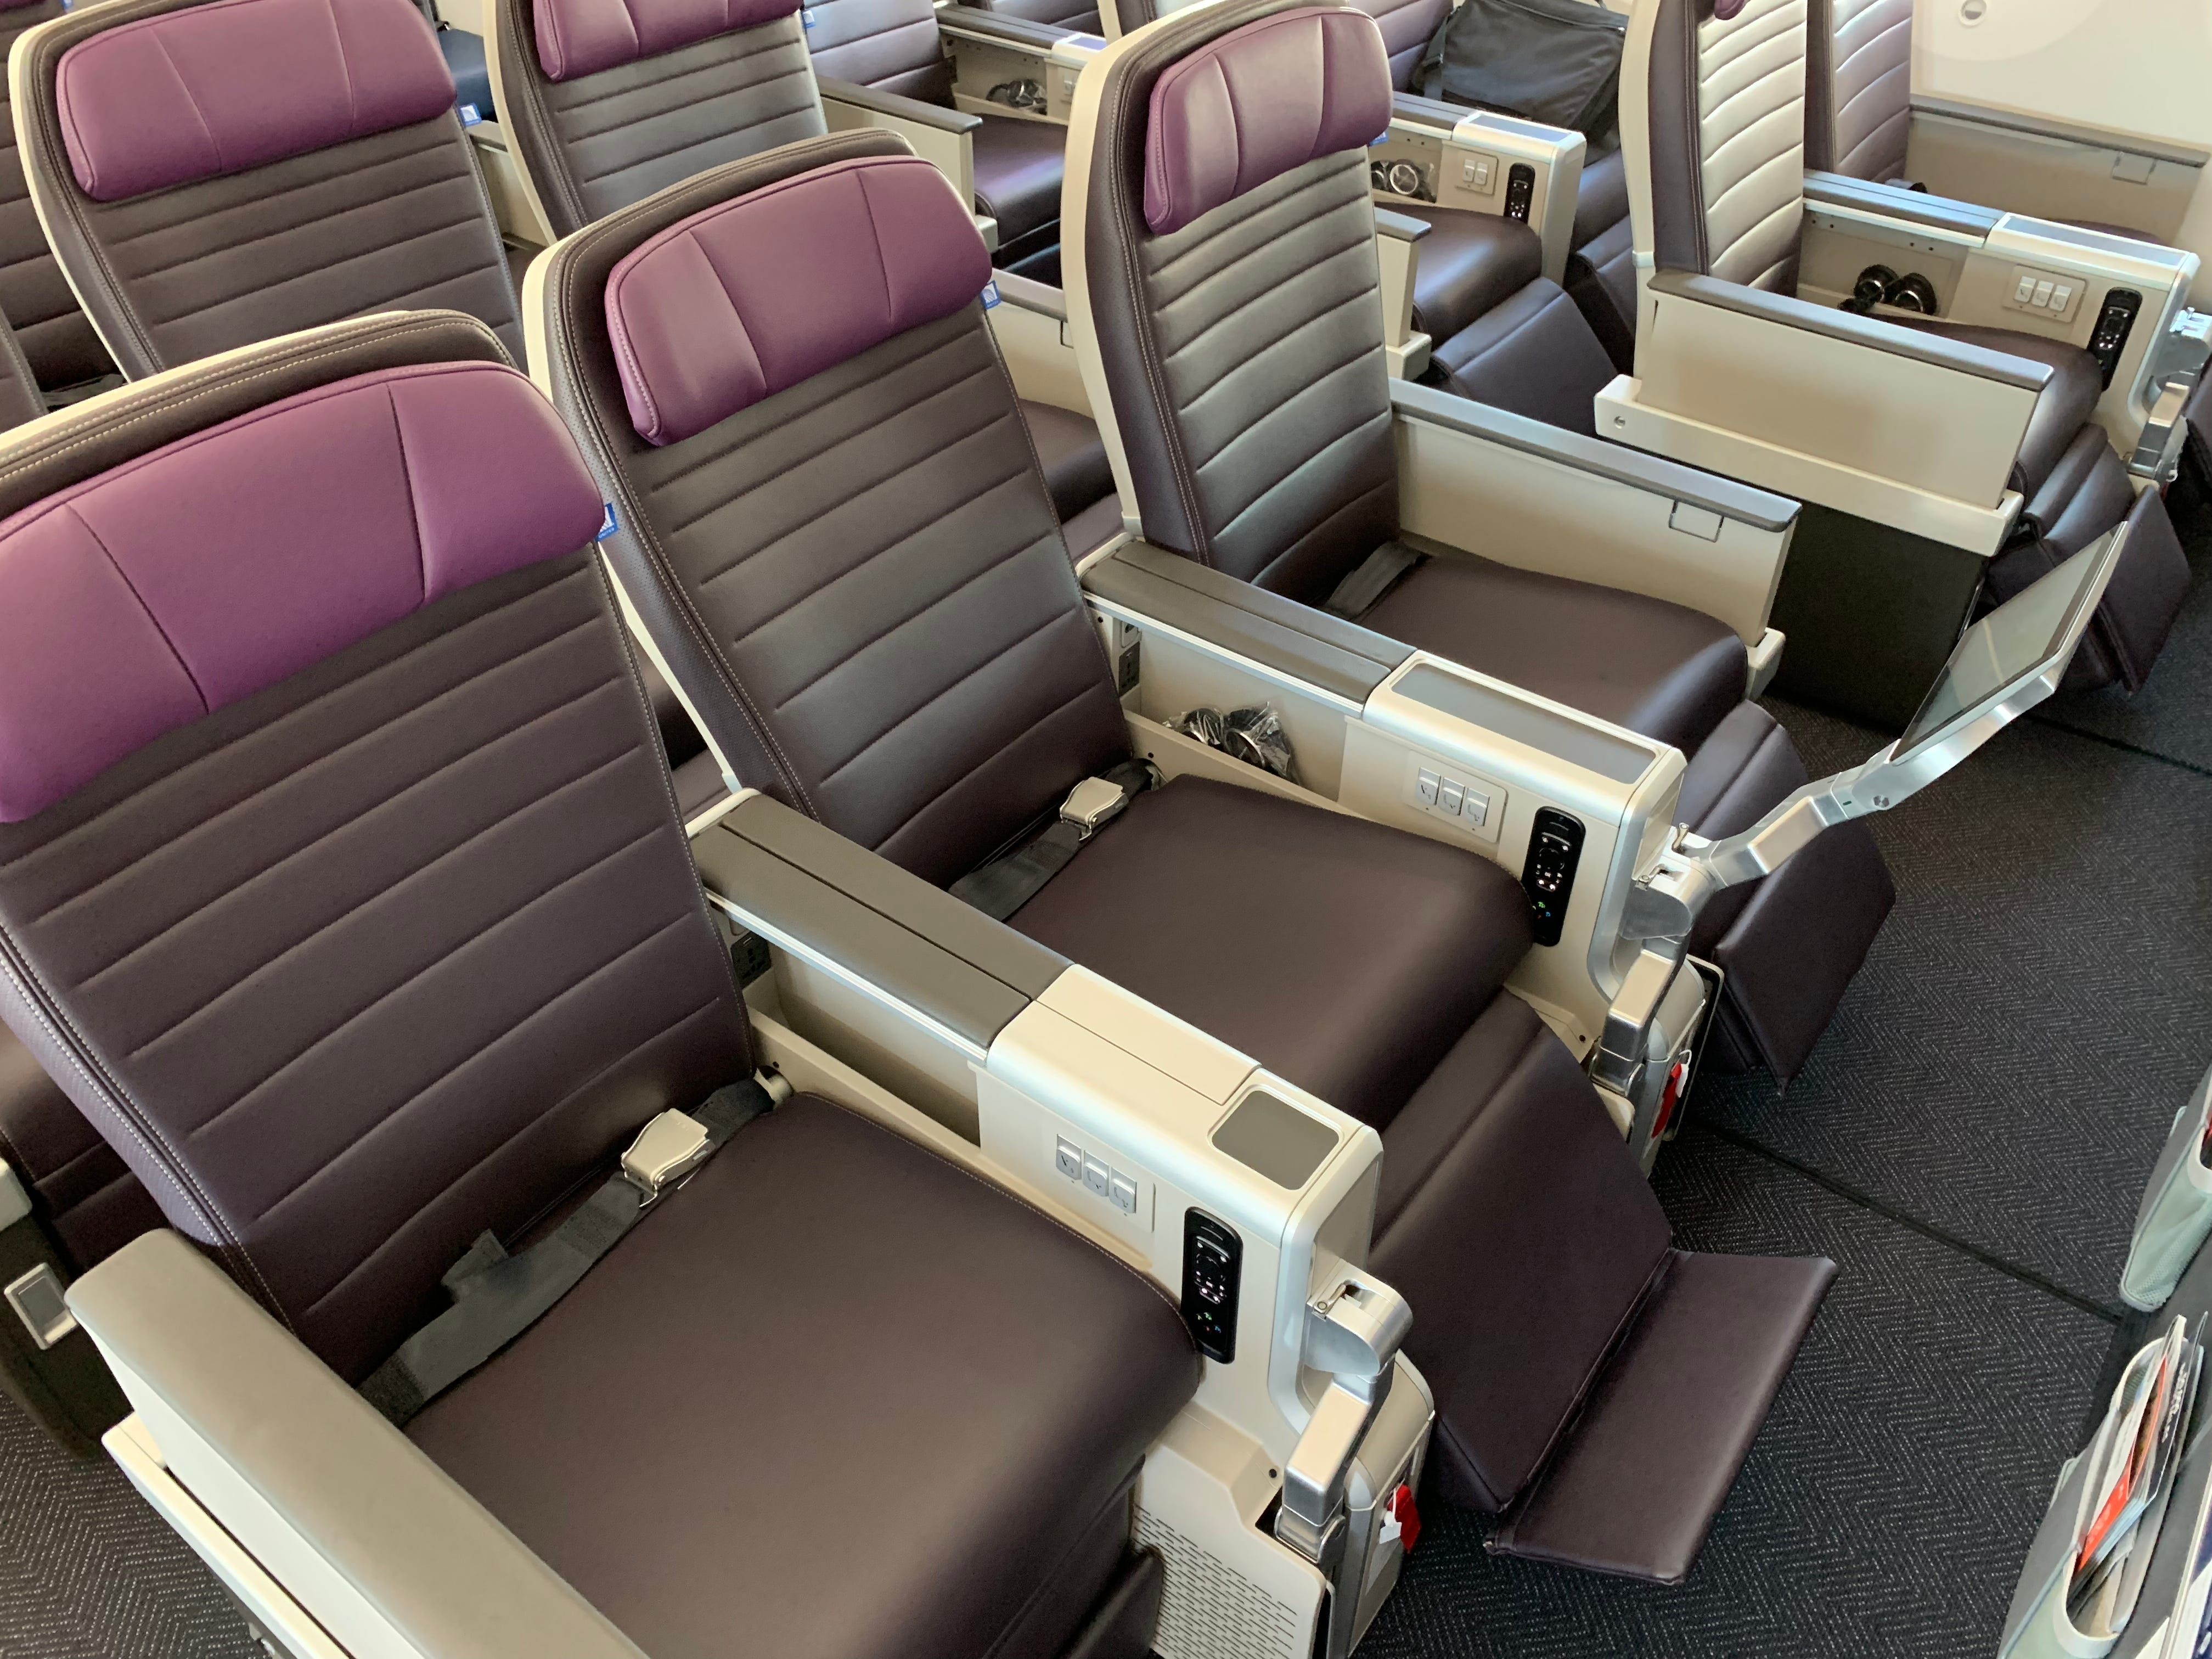 The new 'premium economy seat' is seen on United Airlines new Boeing 787-10 Dreamliner as it was prepared to enter commercial service at Washington Dulles airport on Nov. 16, 2018.